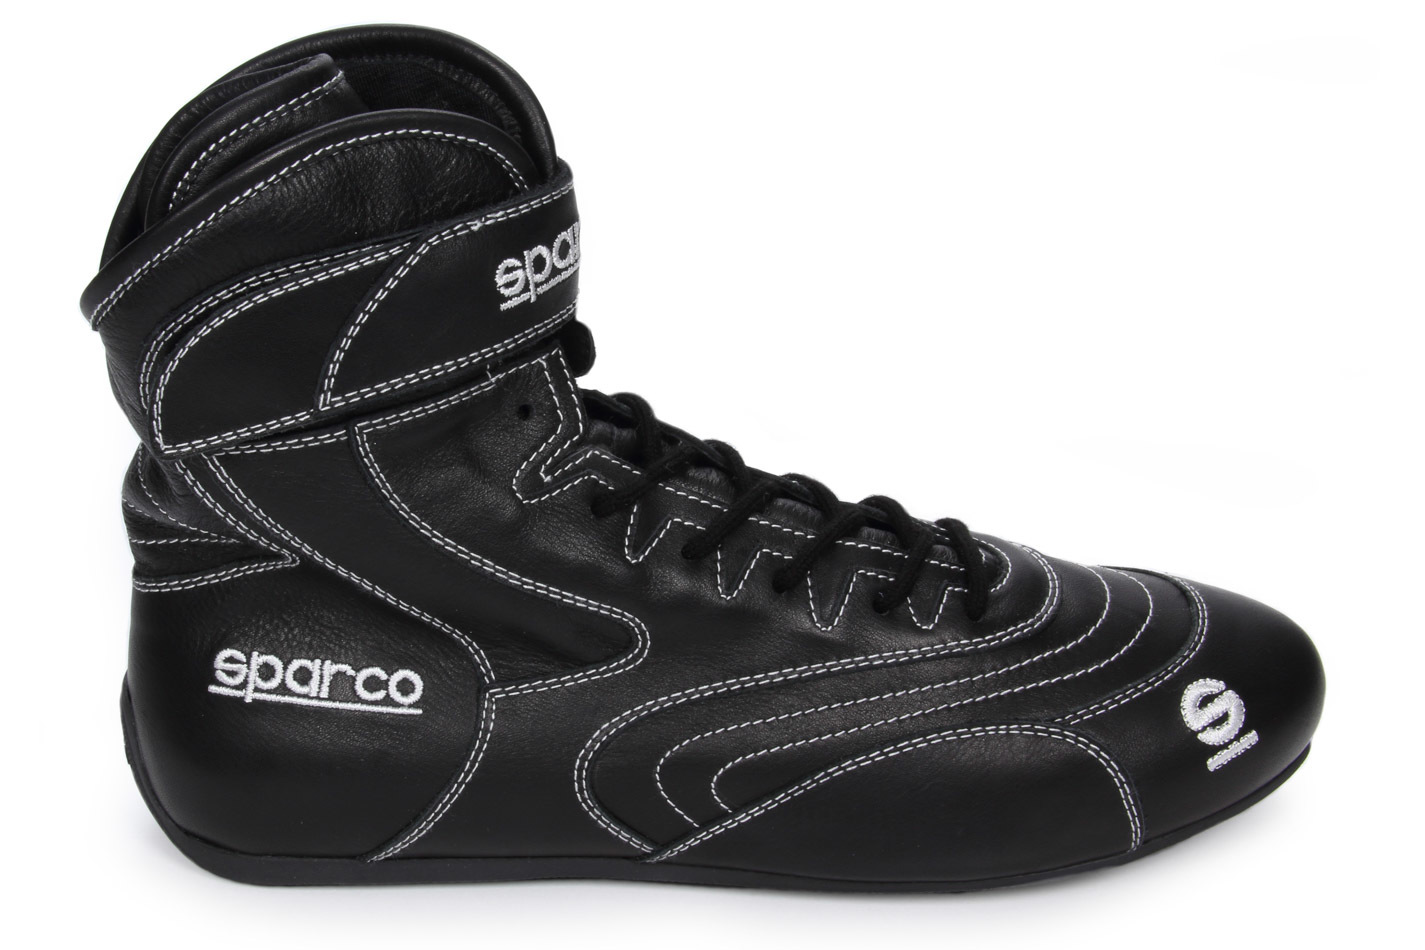 Sparco 00127344NR Shoe, SFI 20 Drag, Driving, High-Top, SFI 20, Leather Outer, Fire Retardant Inner, Black, Euro 44, Pair